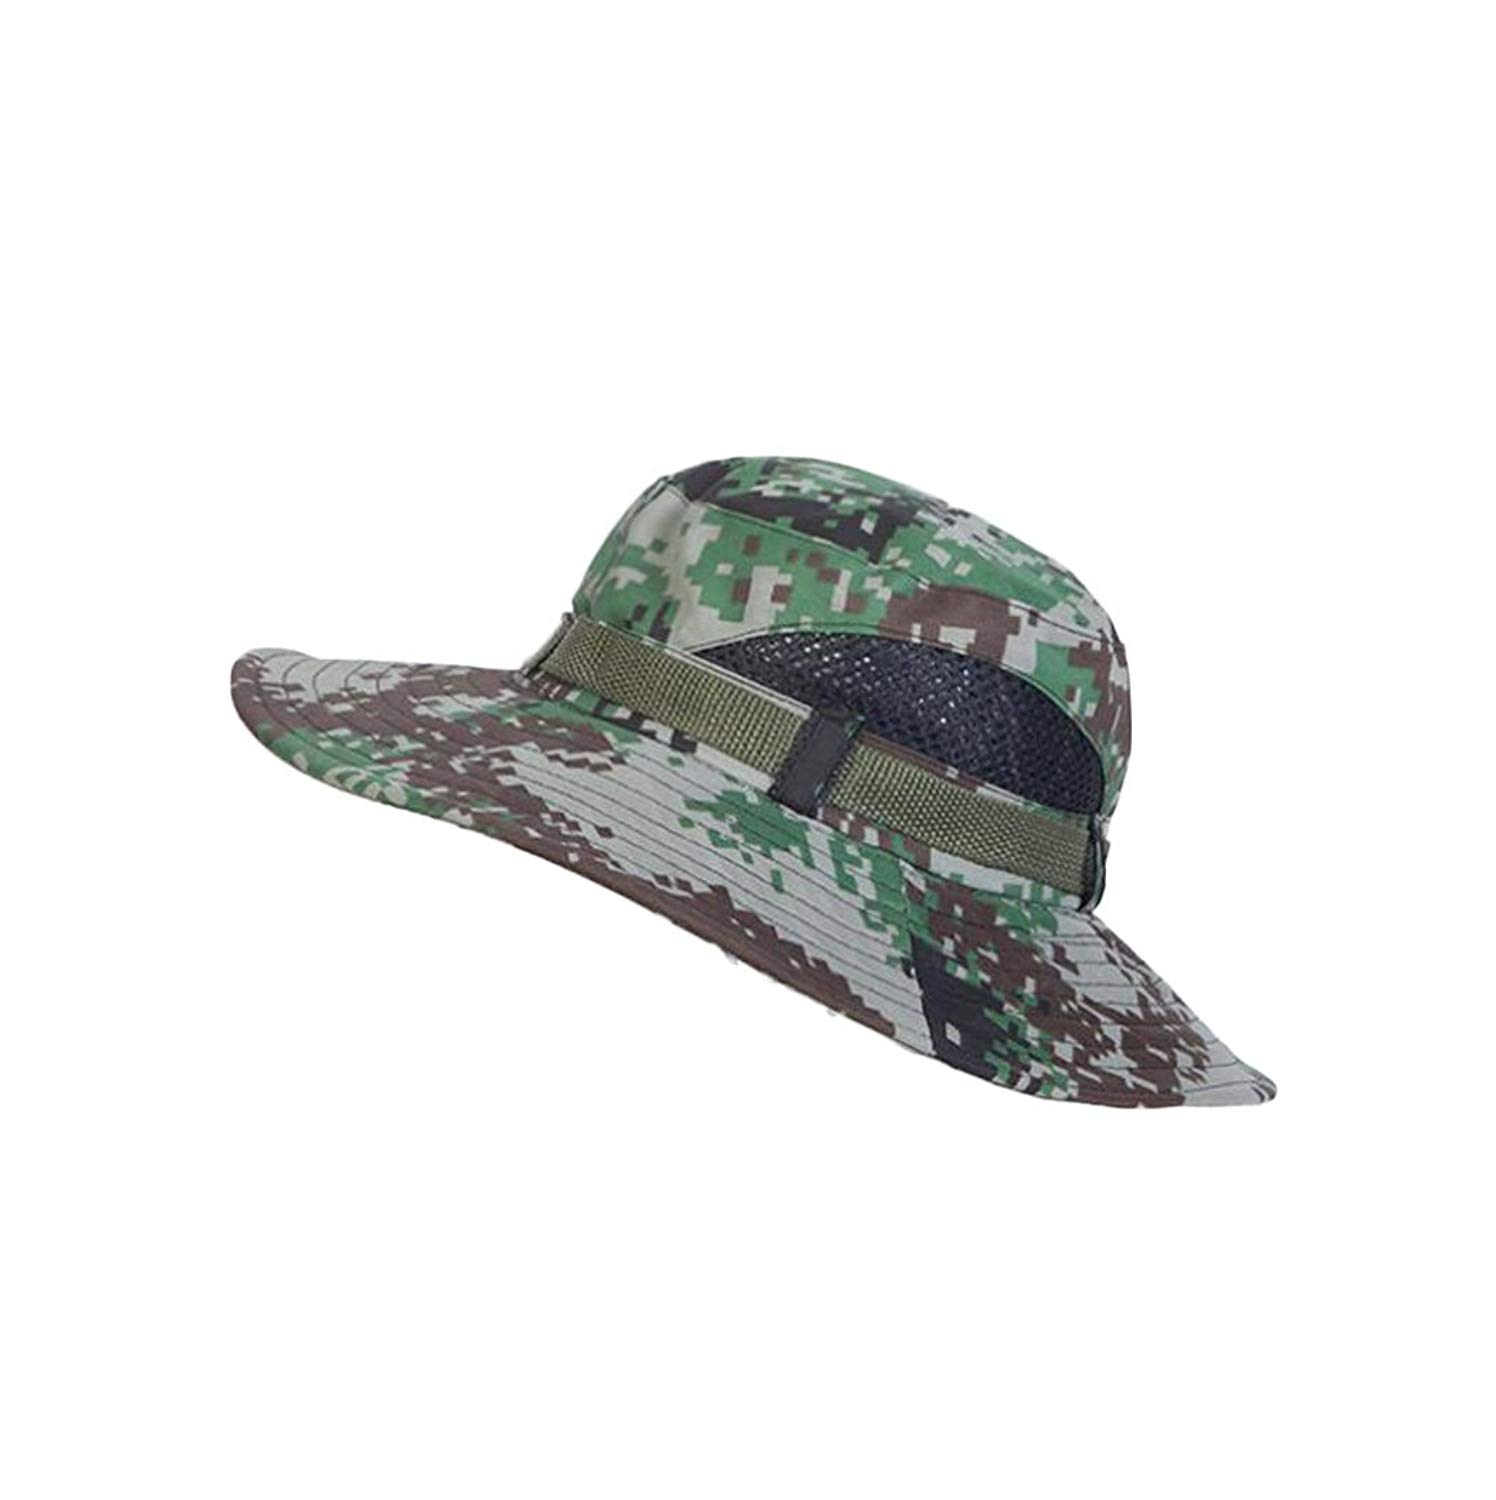 628e58b4abd25 Get Quotations · 4URNEED Camo Mens Wide Brim Outdoor Sun-Hats Fishing Hats  Hunting Hats Safari Summer Hat